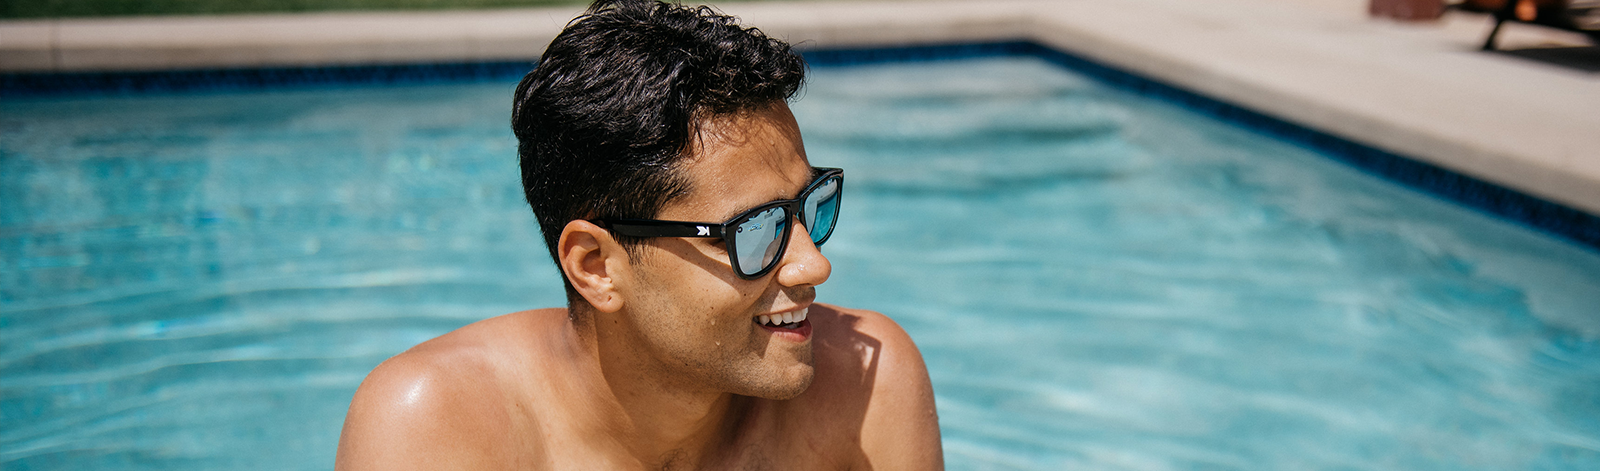 why sunglasses are so crucial for preventing sun damage to eyes